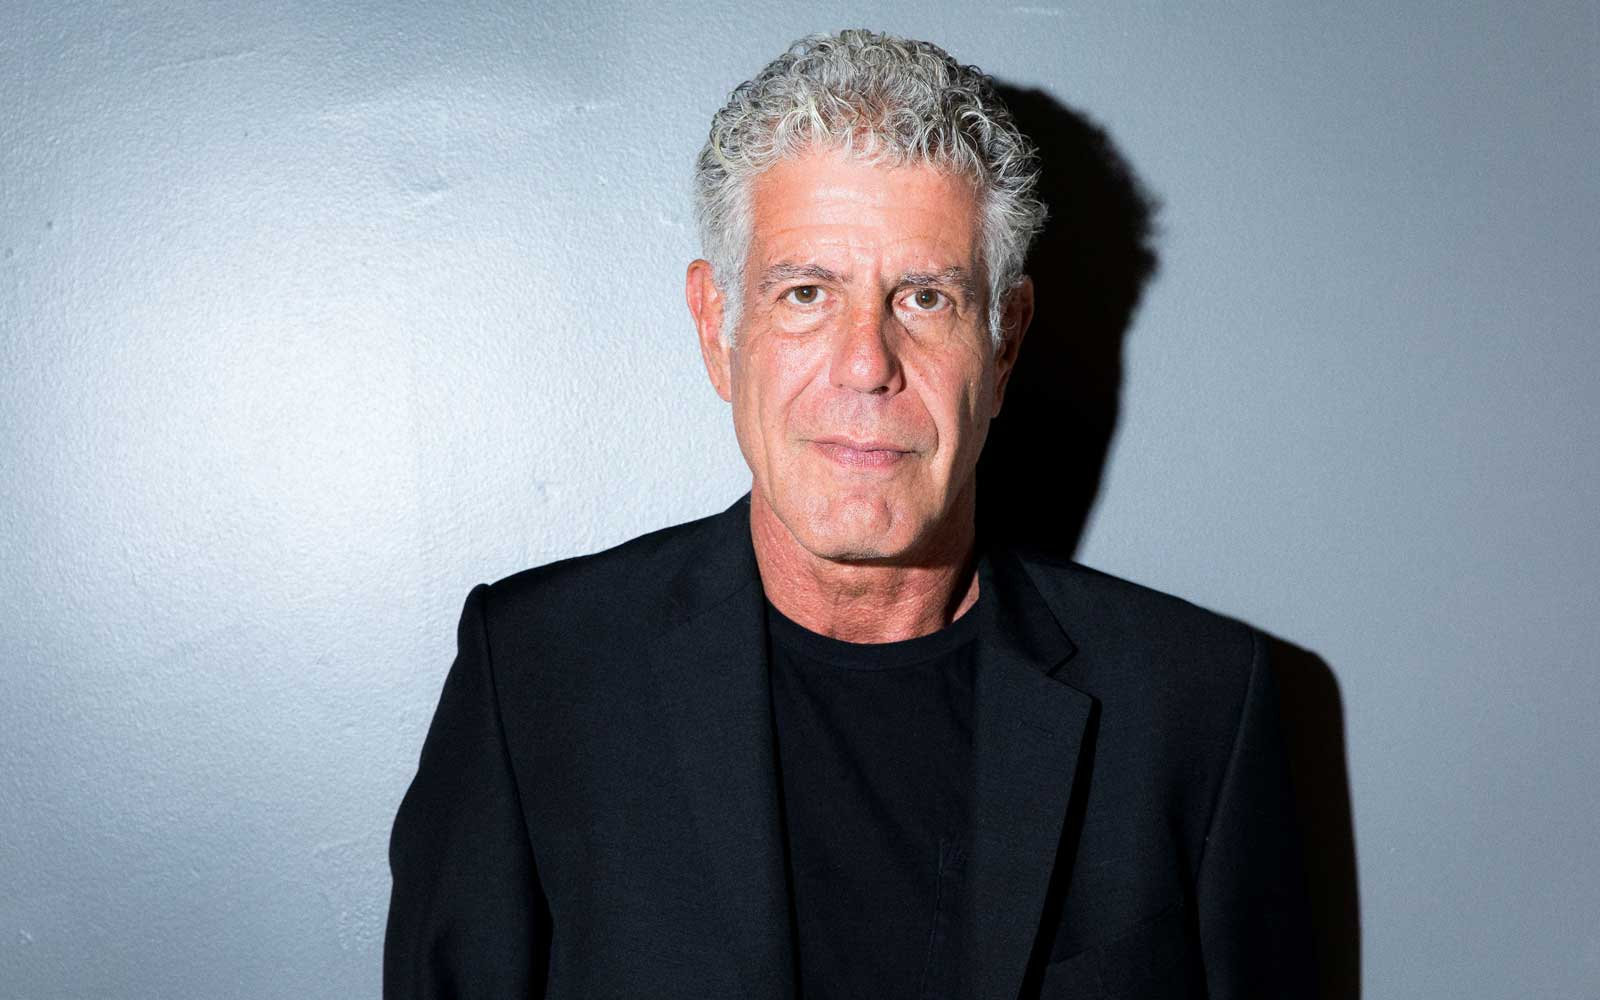 Anthony Bourdain Wins Posthumous Emmy for Parts Unknown Over a Year After His Death anthony-bourdain-2017-bourdain0618